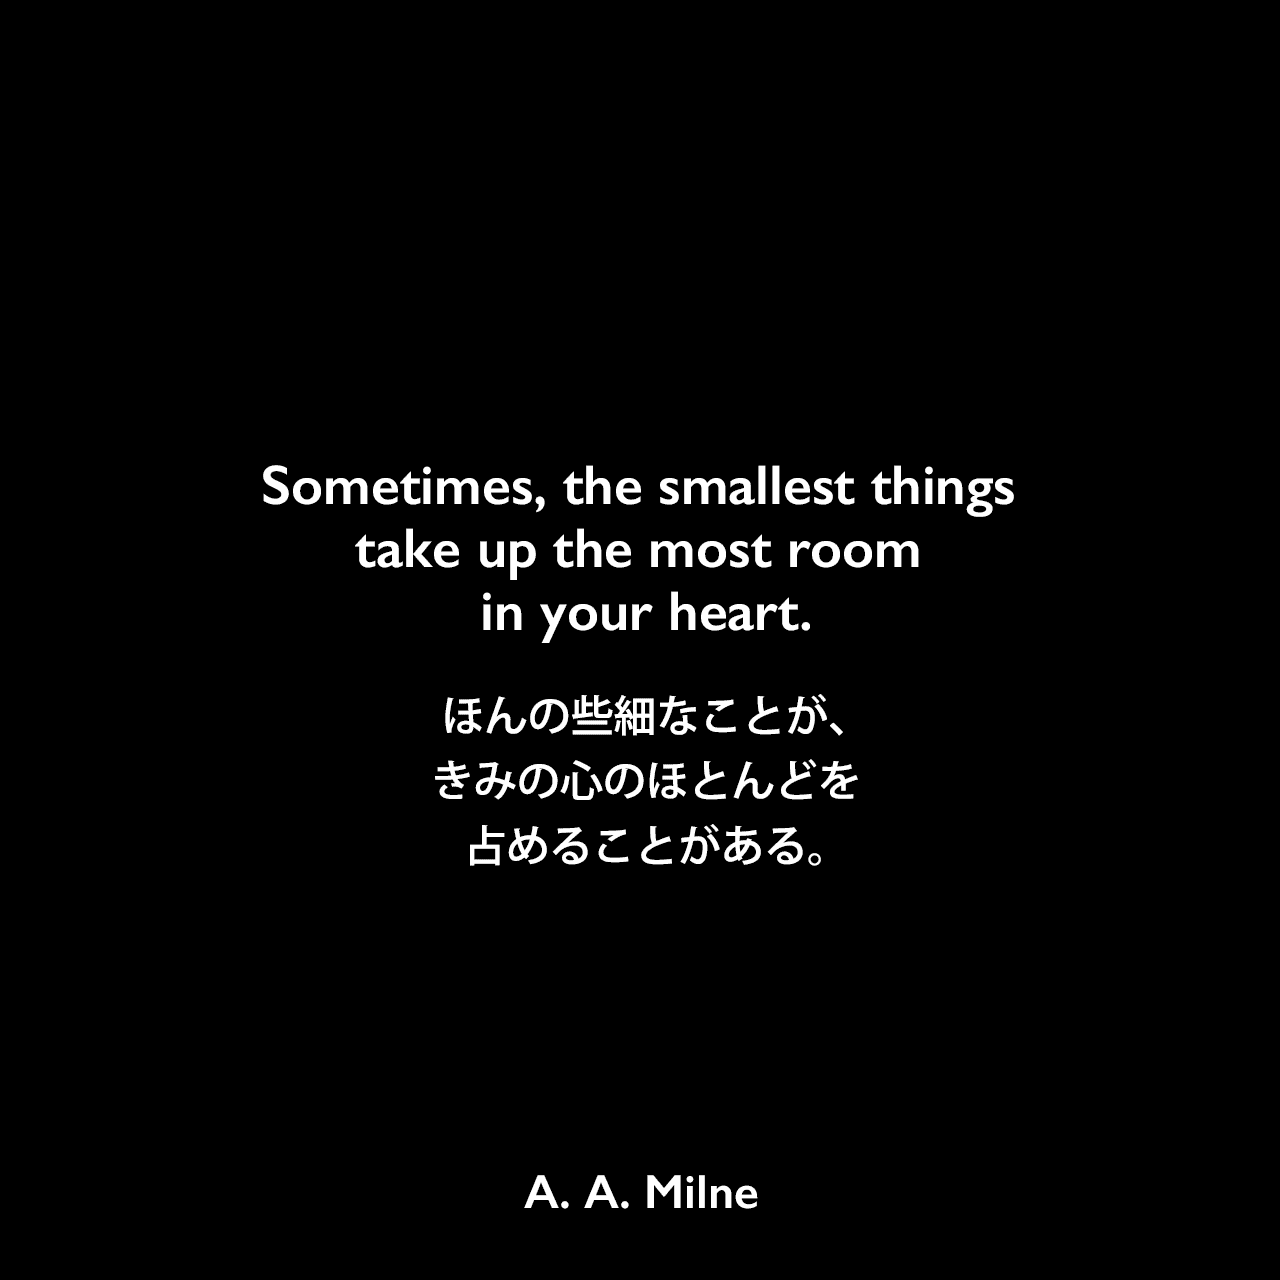 Sometimes, the smallest things take up the most room in your heart.ほんの些細なことが、きみの心のほとんどを占めることがある。A. A. Milne